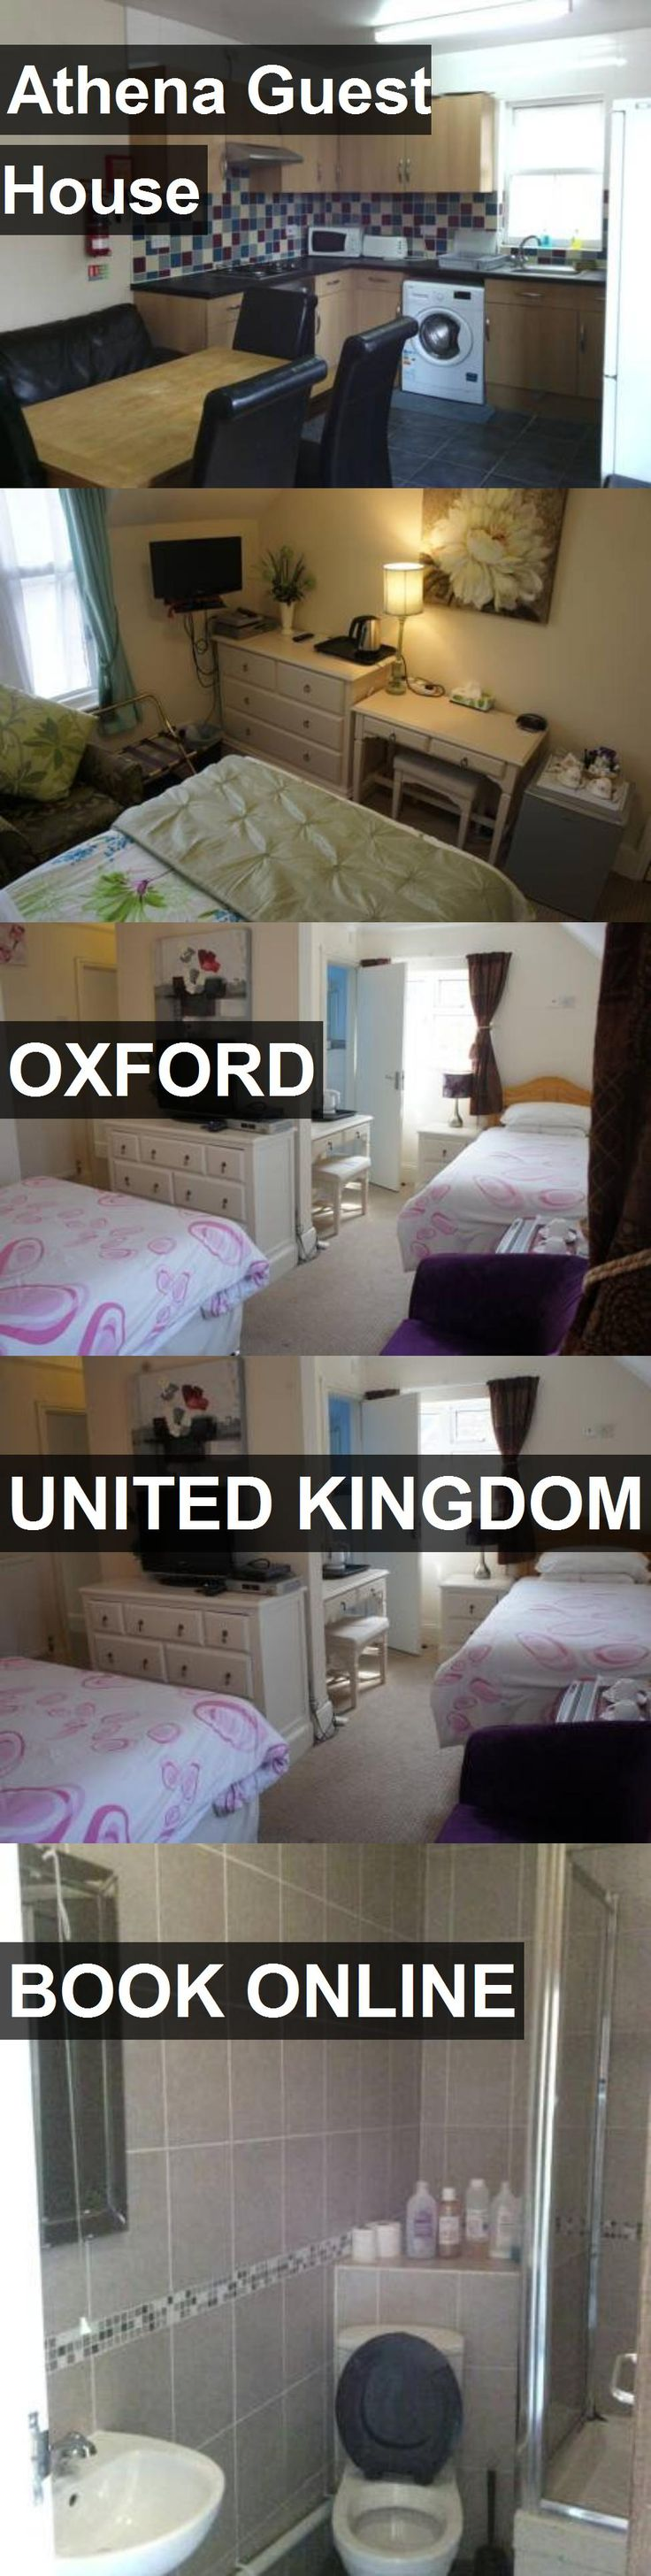 Athena Guest House in Oxford, United Kingdom. For more information, photos, reviews and best prices please follow the link. #UnitedKingdom #Oxford #travel #vacation #guesthouse